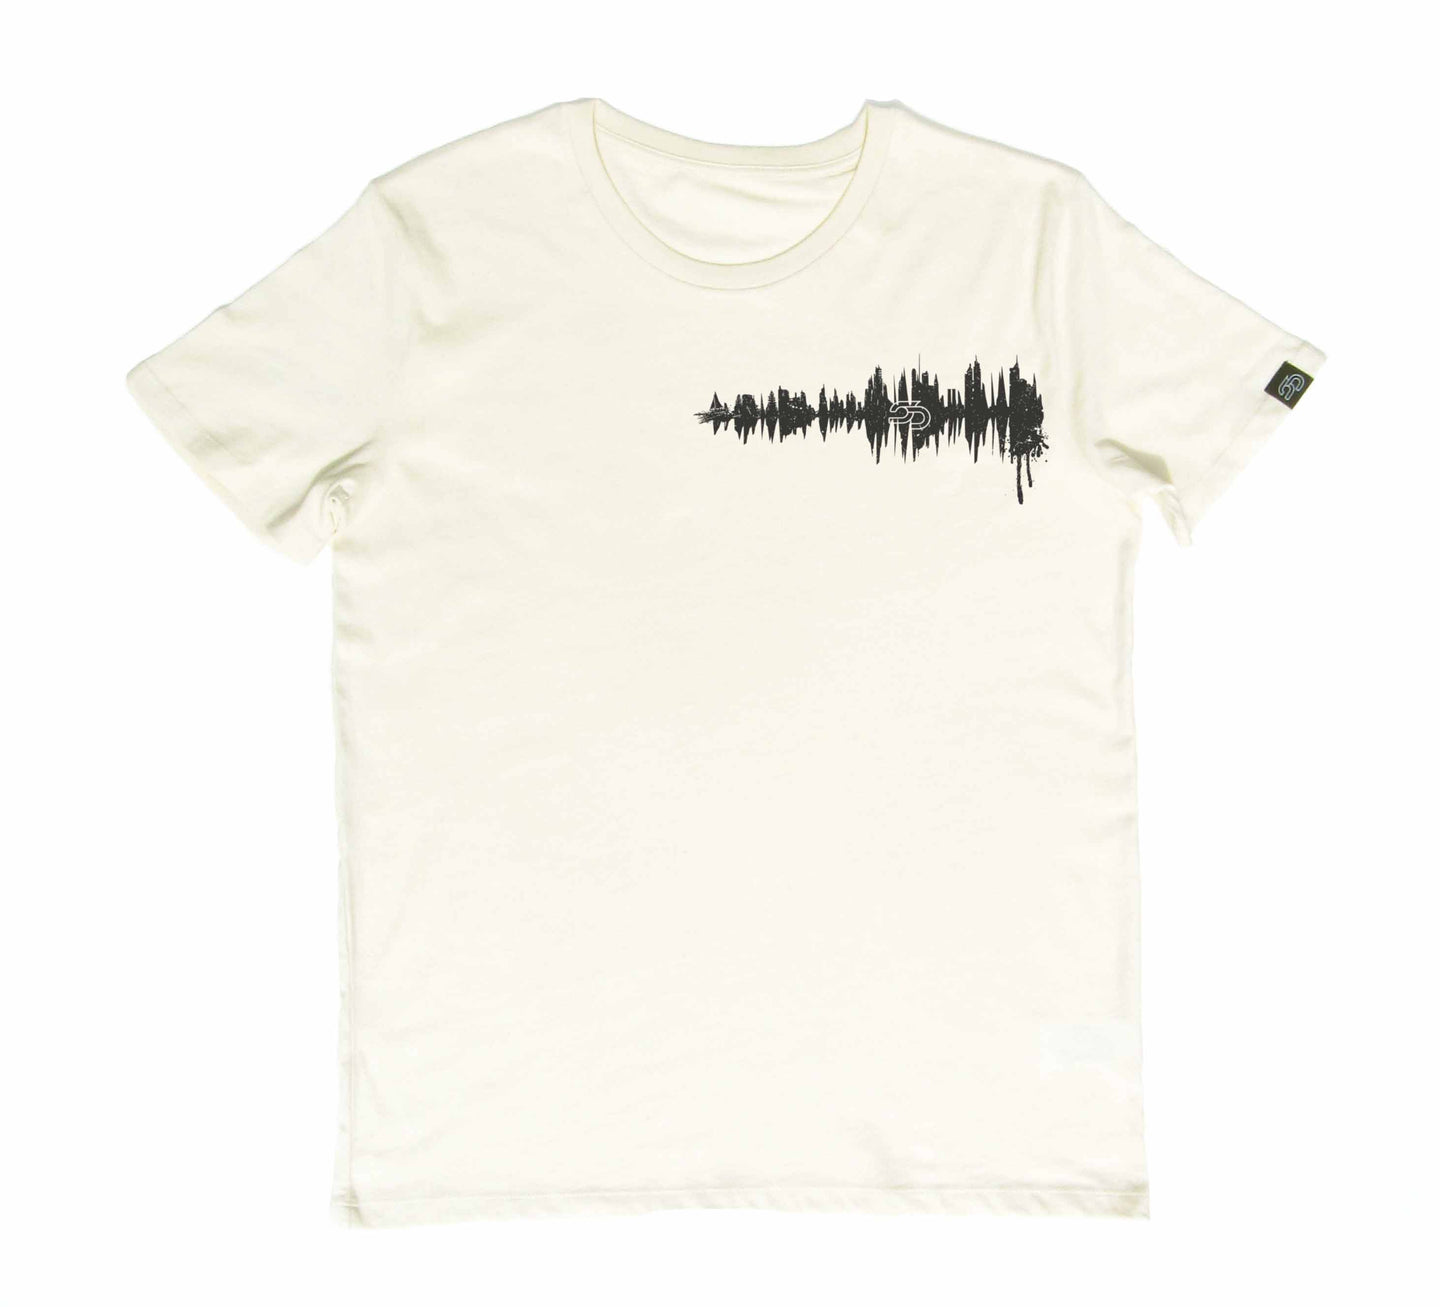 SOUND Clothing-organic-cotton-fairtrade-t-shirt-audio-music-producer-clothing